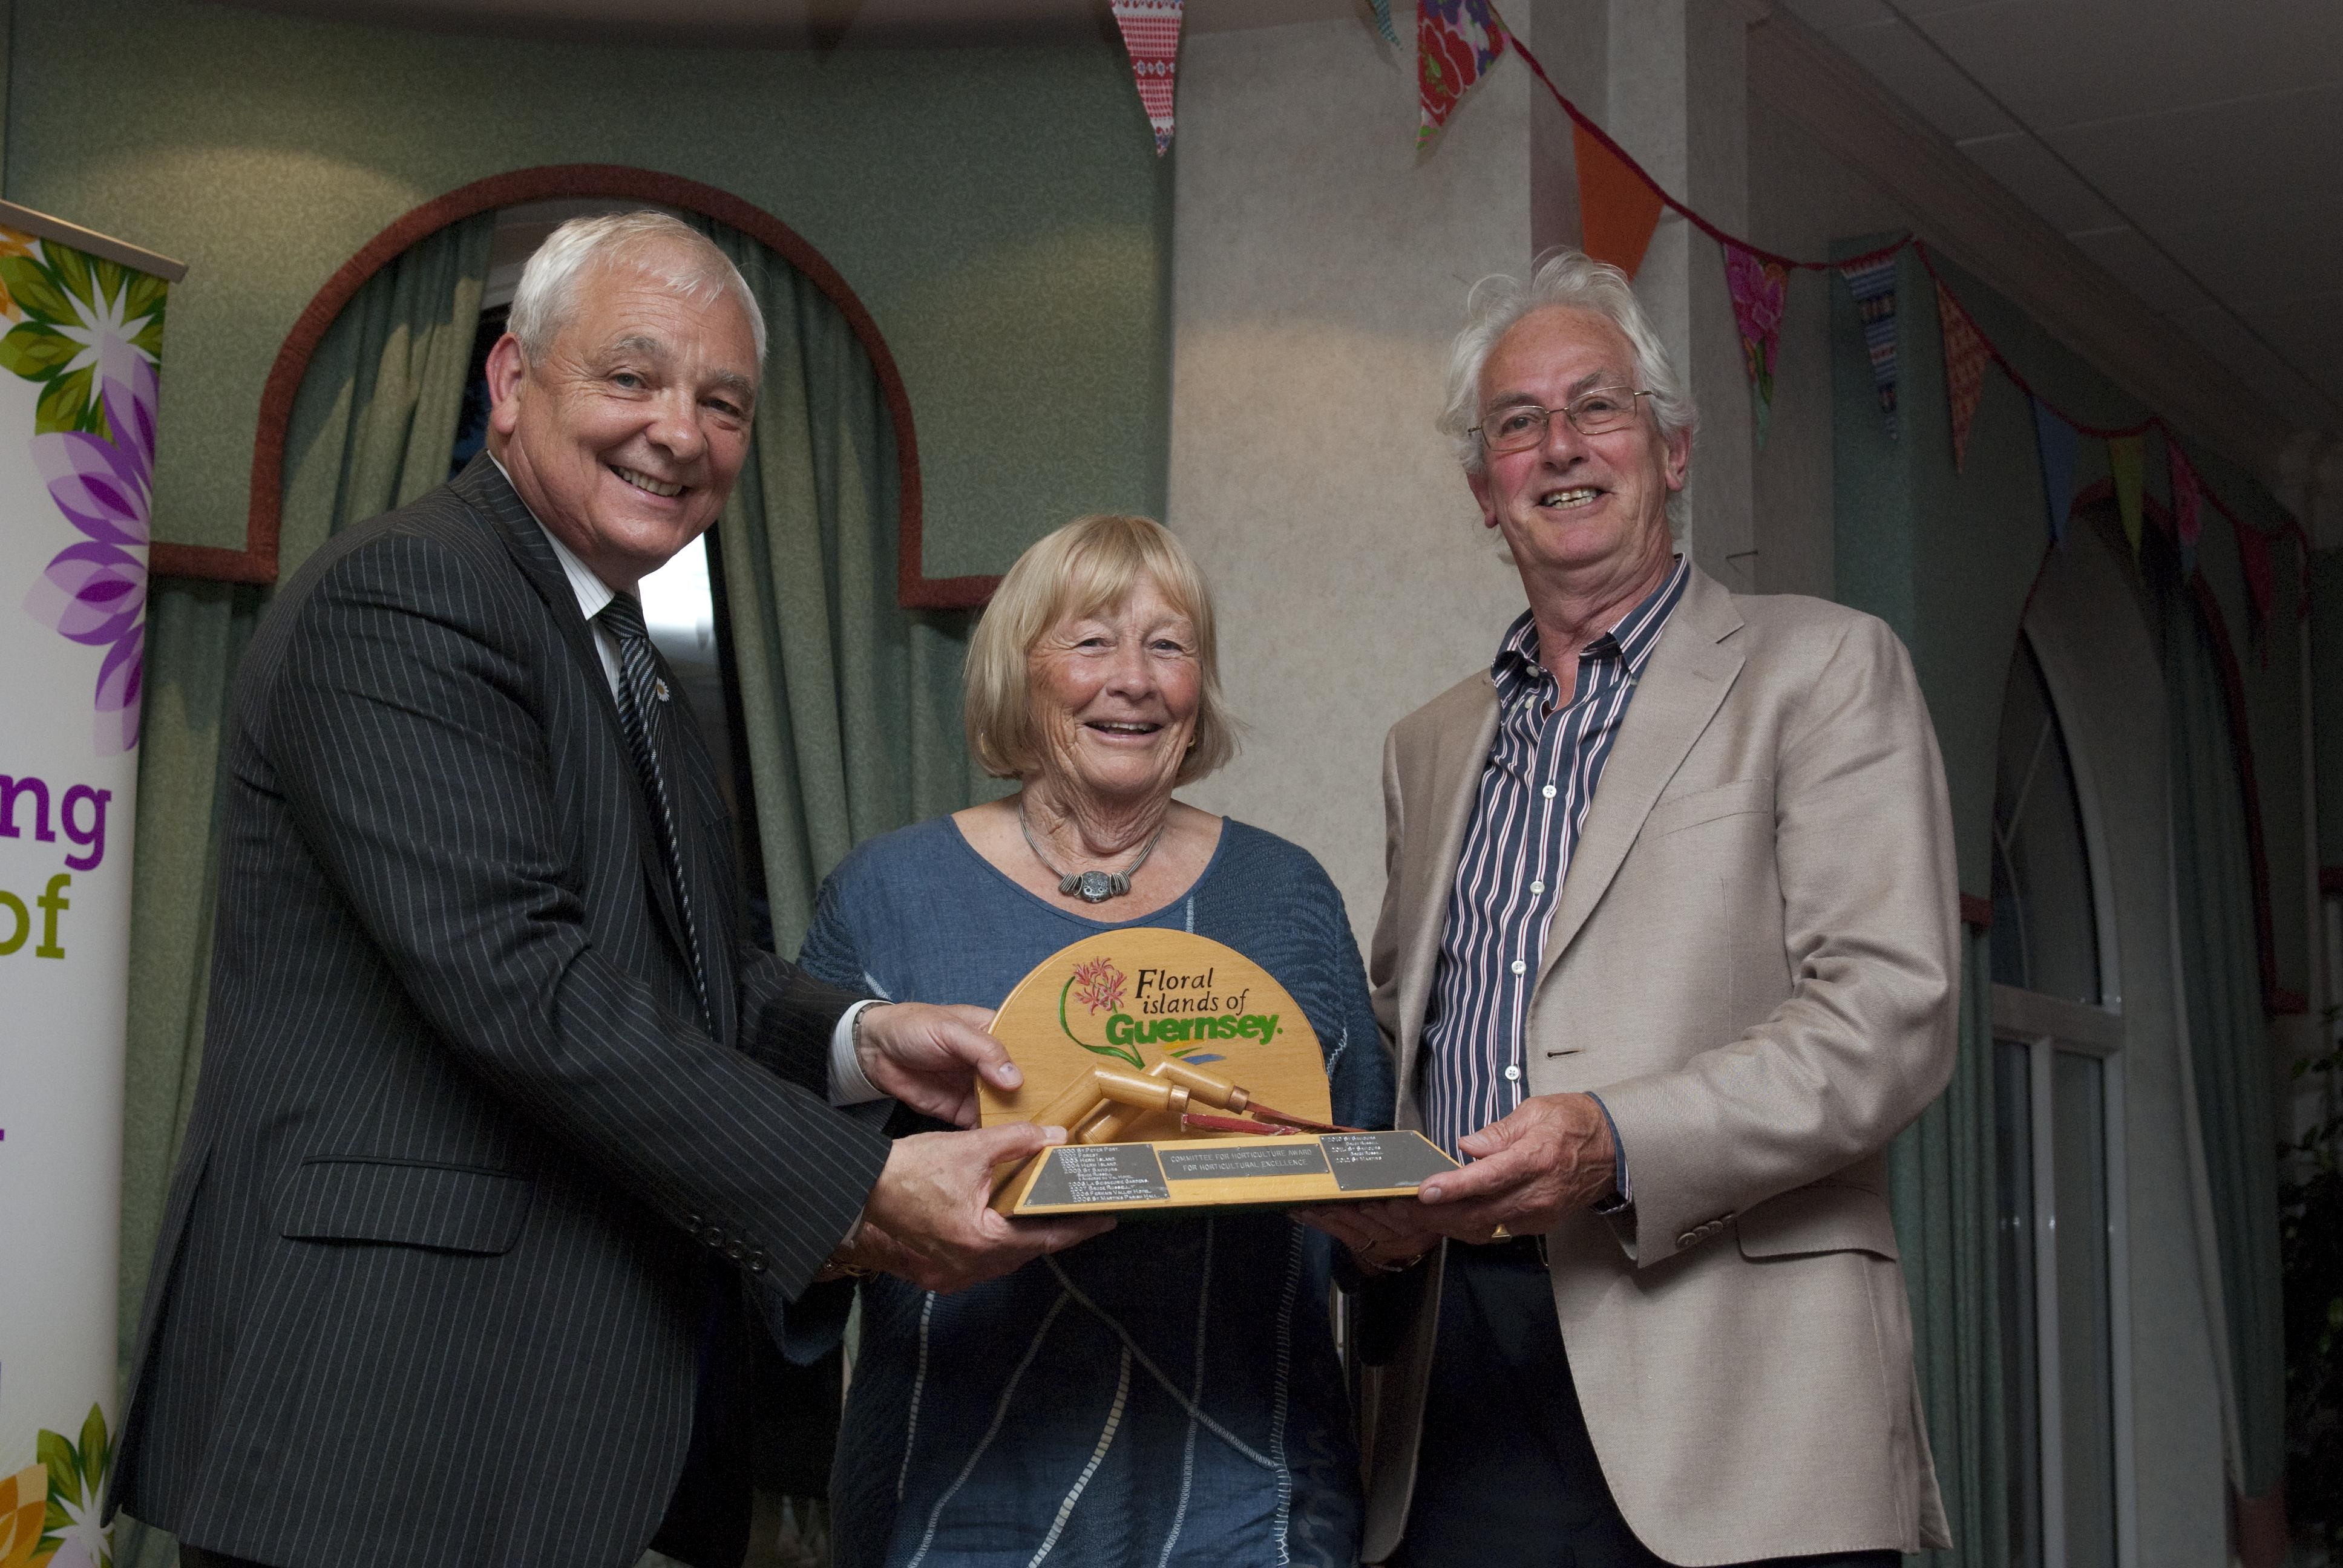 St Martins Horticultural excellence award 2012